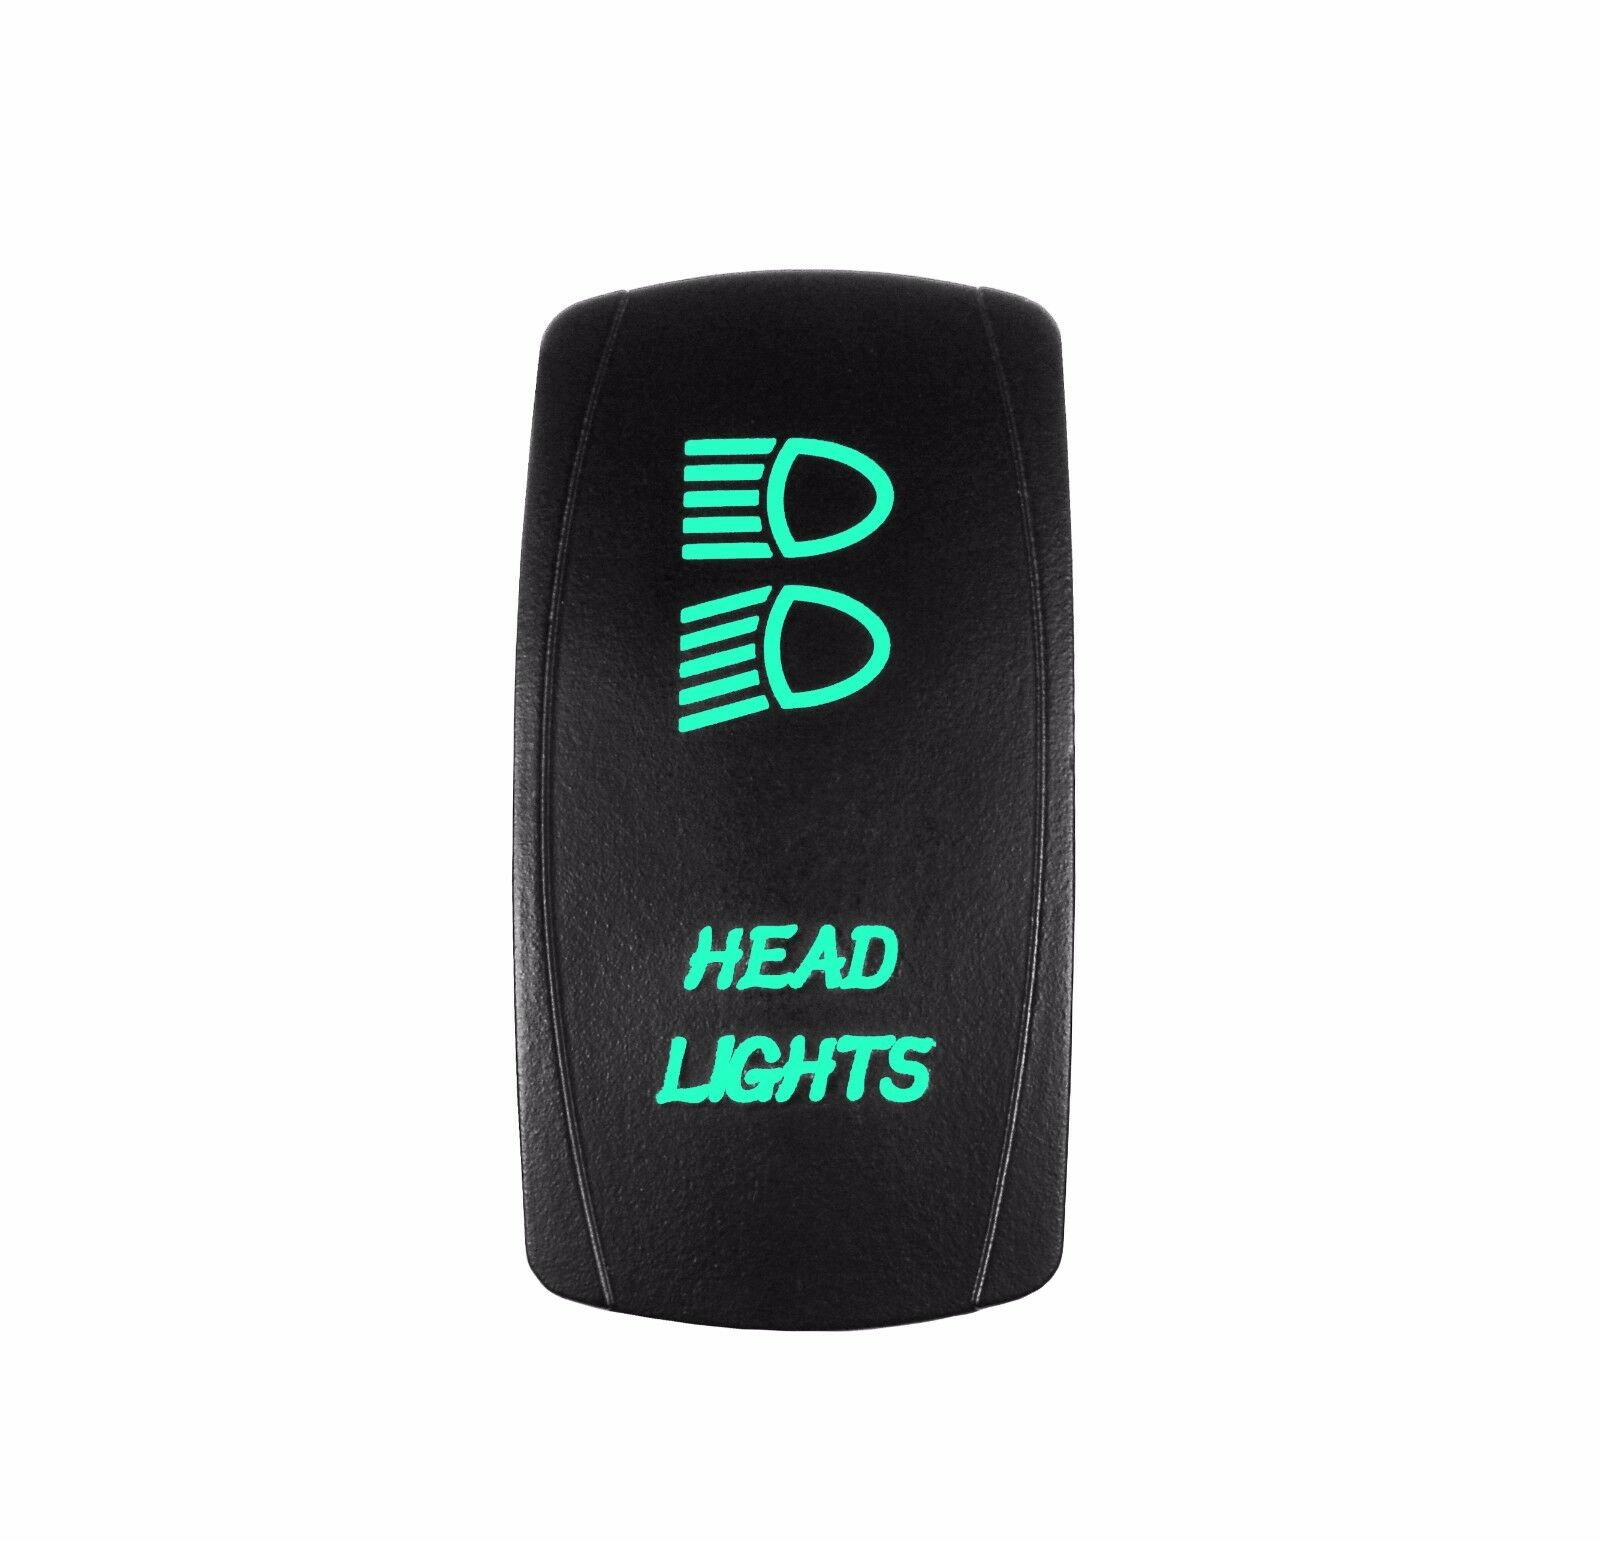 Green 3 Position Rocker Switch Laser Etched 20a 12v Led Head Lights With Legend Offroad 1 Of 5only Available See More